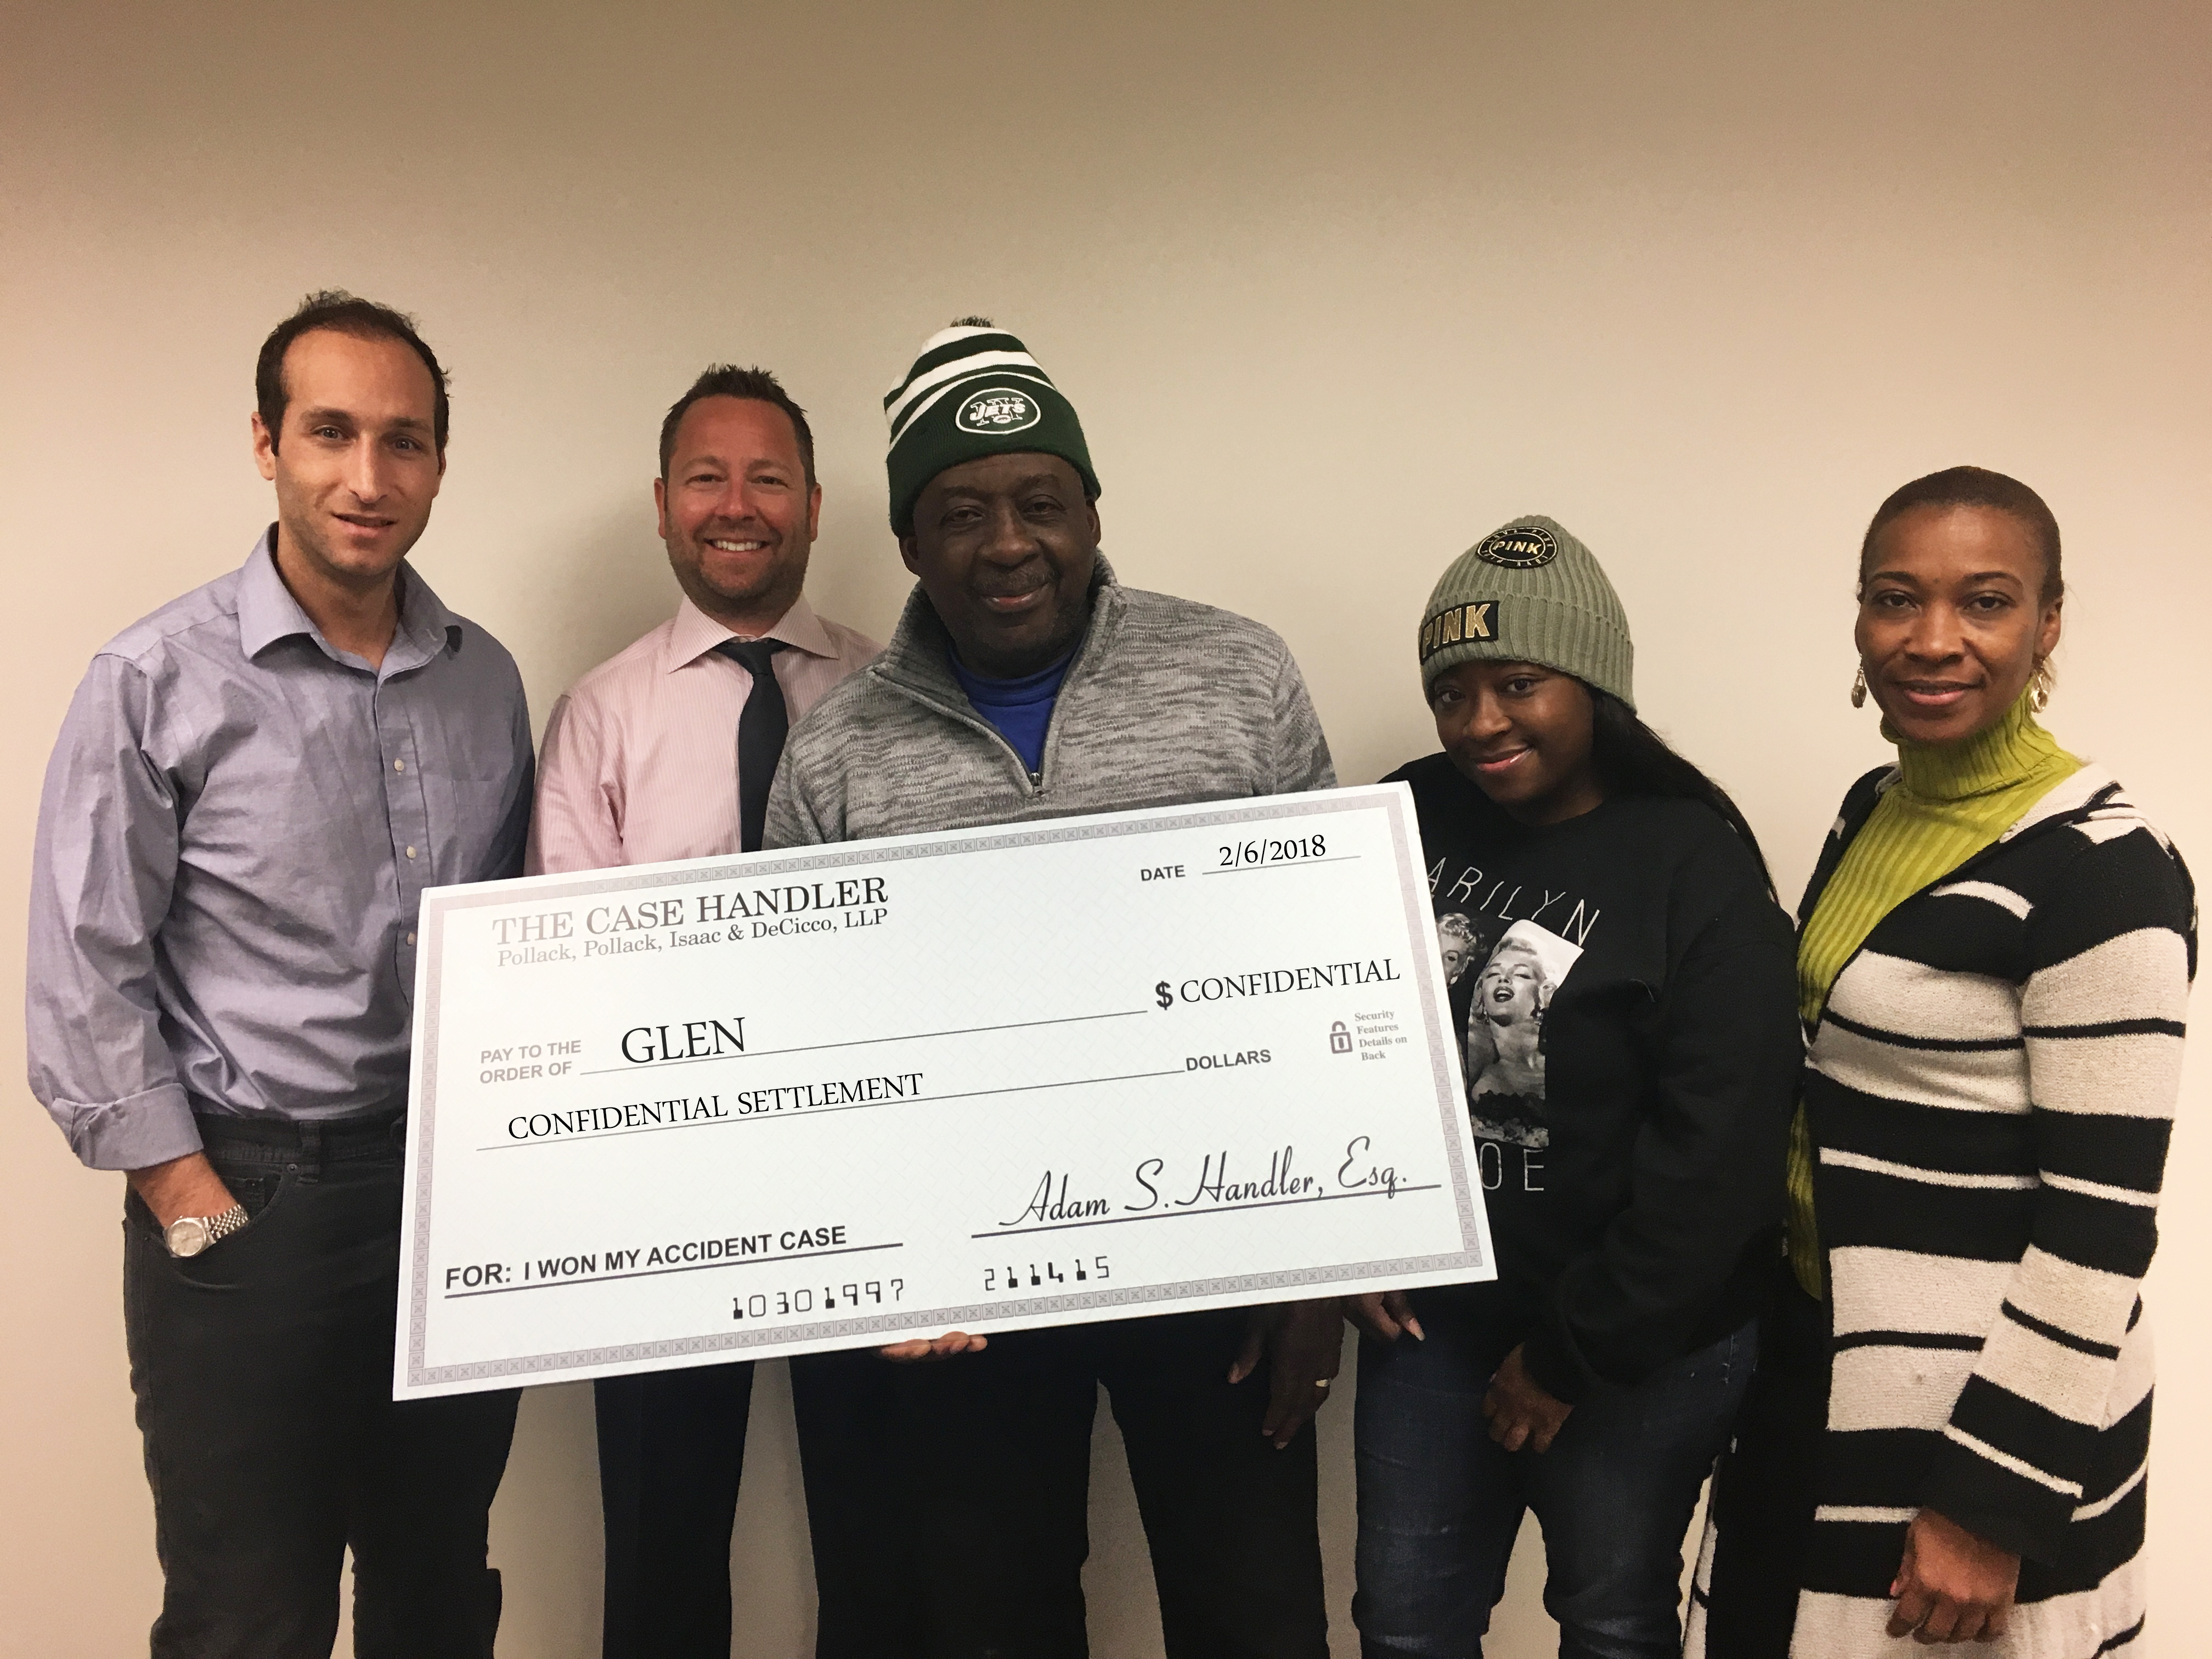 bronx accident lawyer review: glen